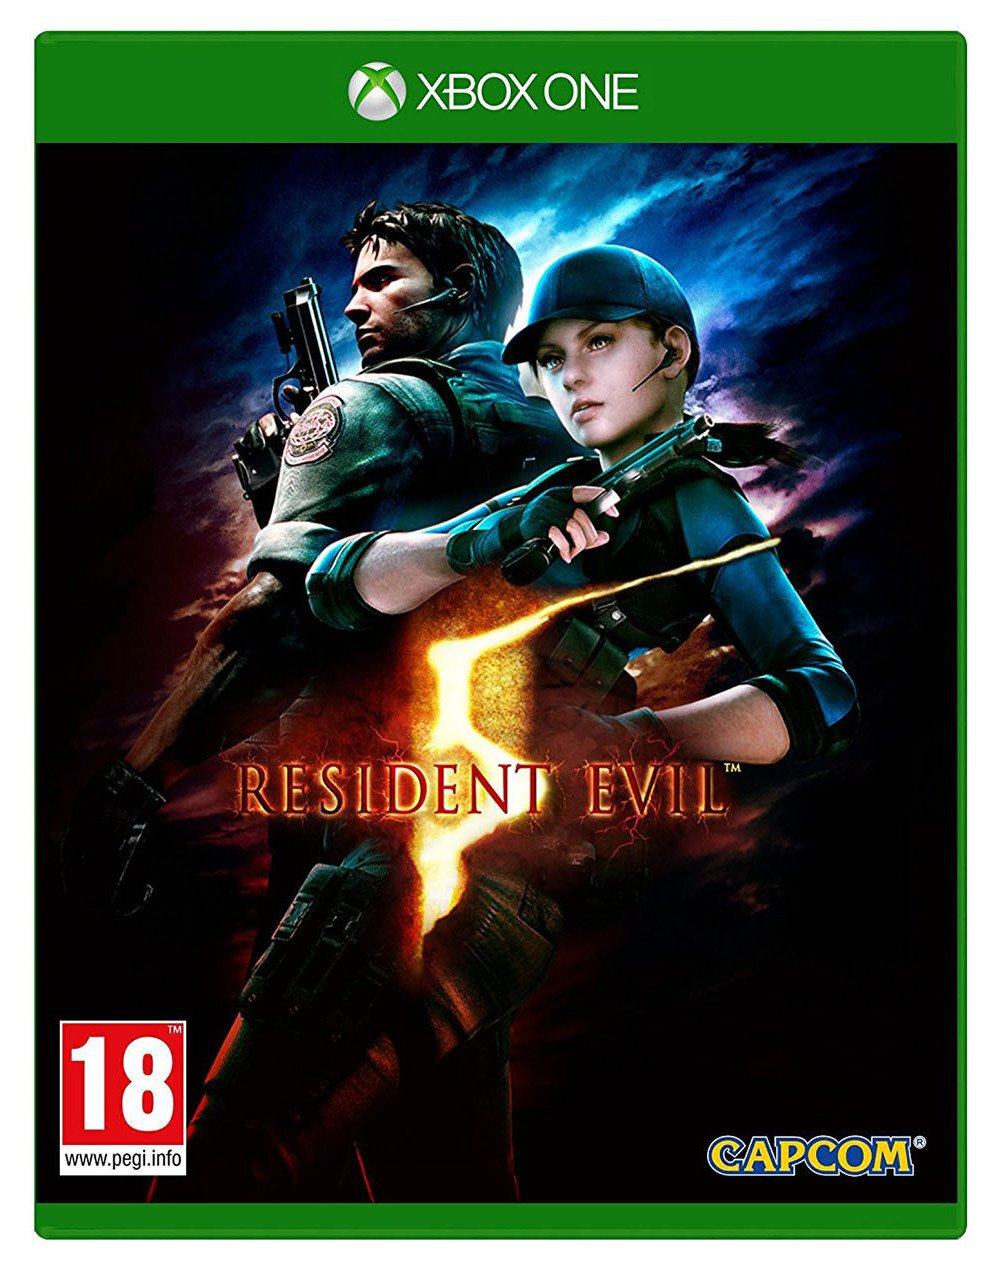 Resident Evil Xbox One Game